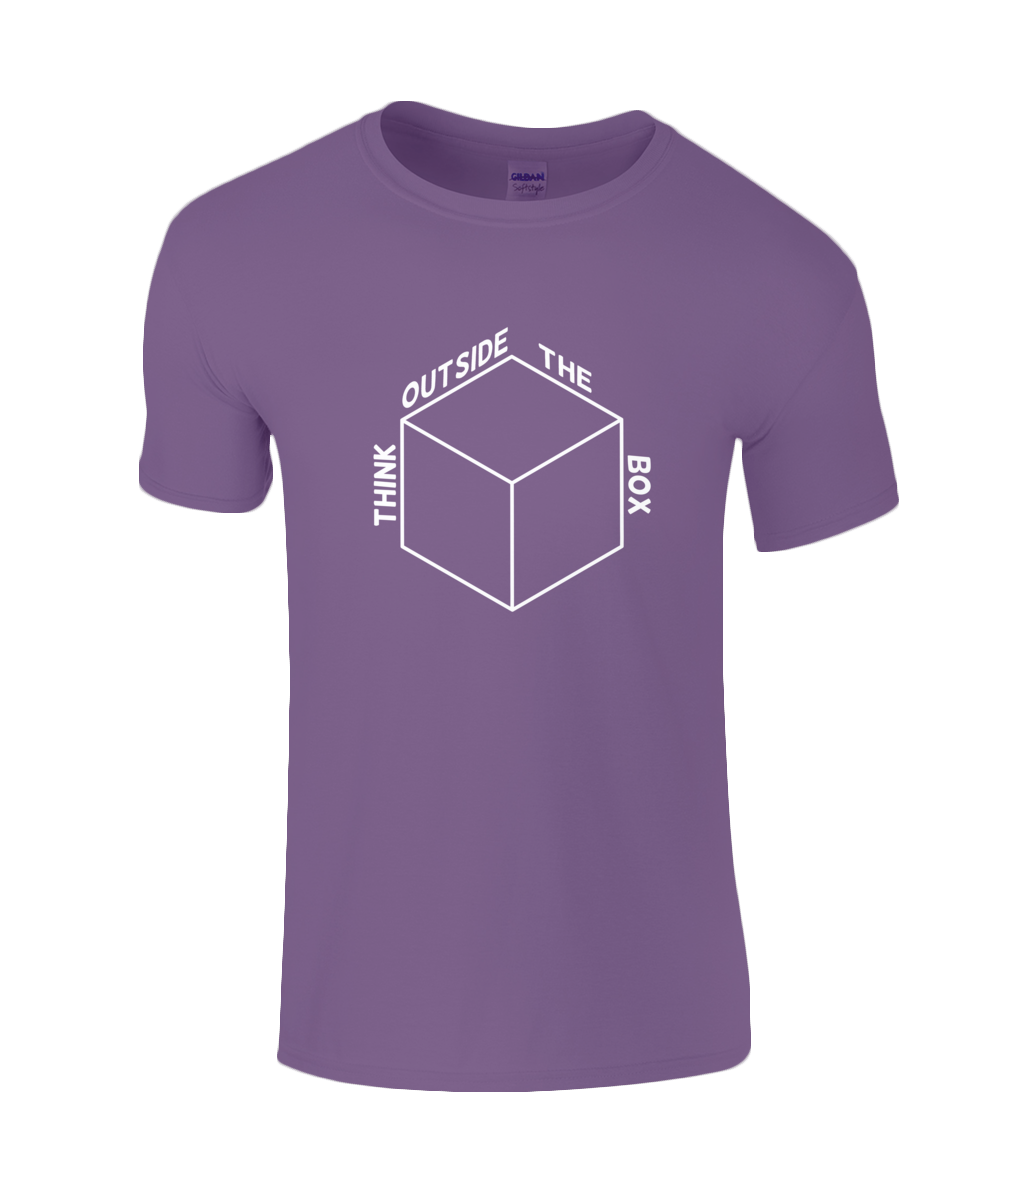 Think Outside The Box - men's t-shirt